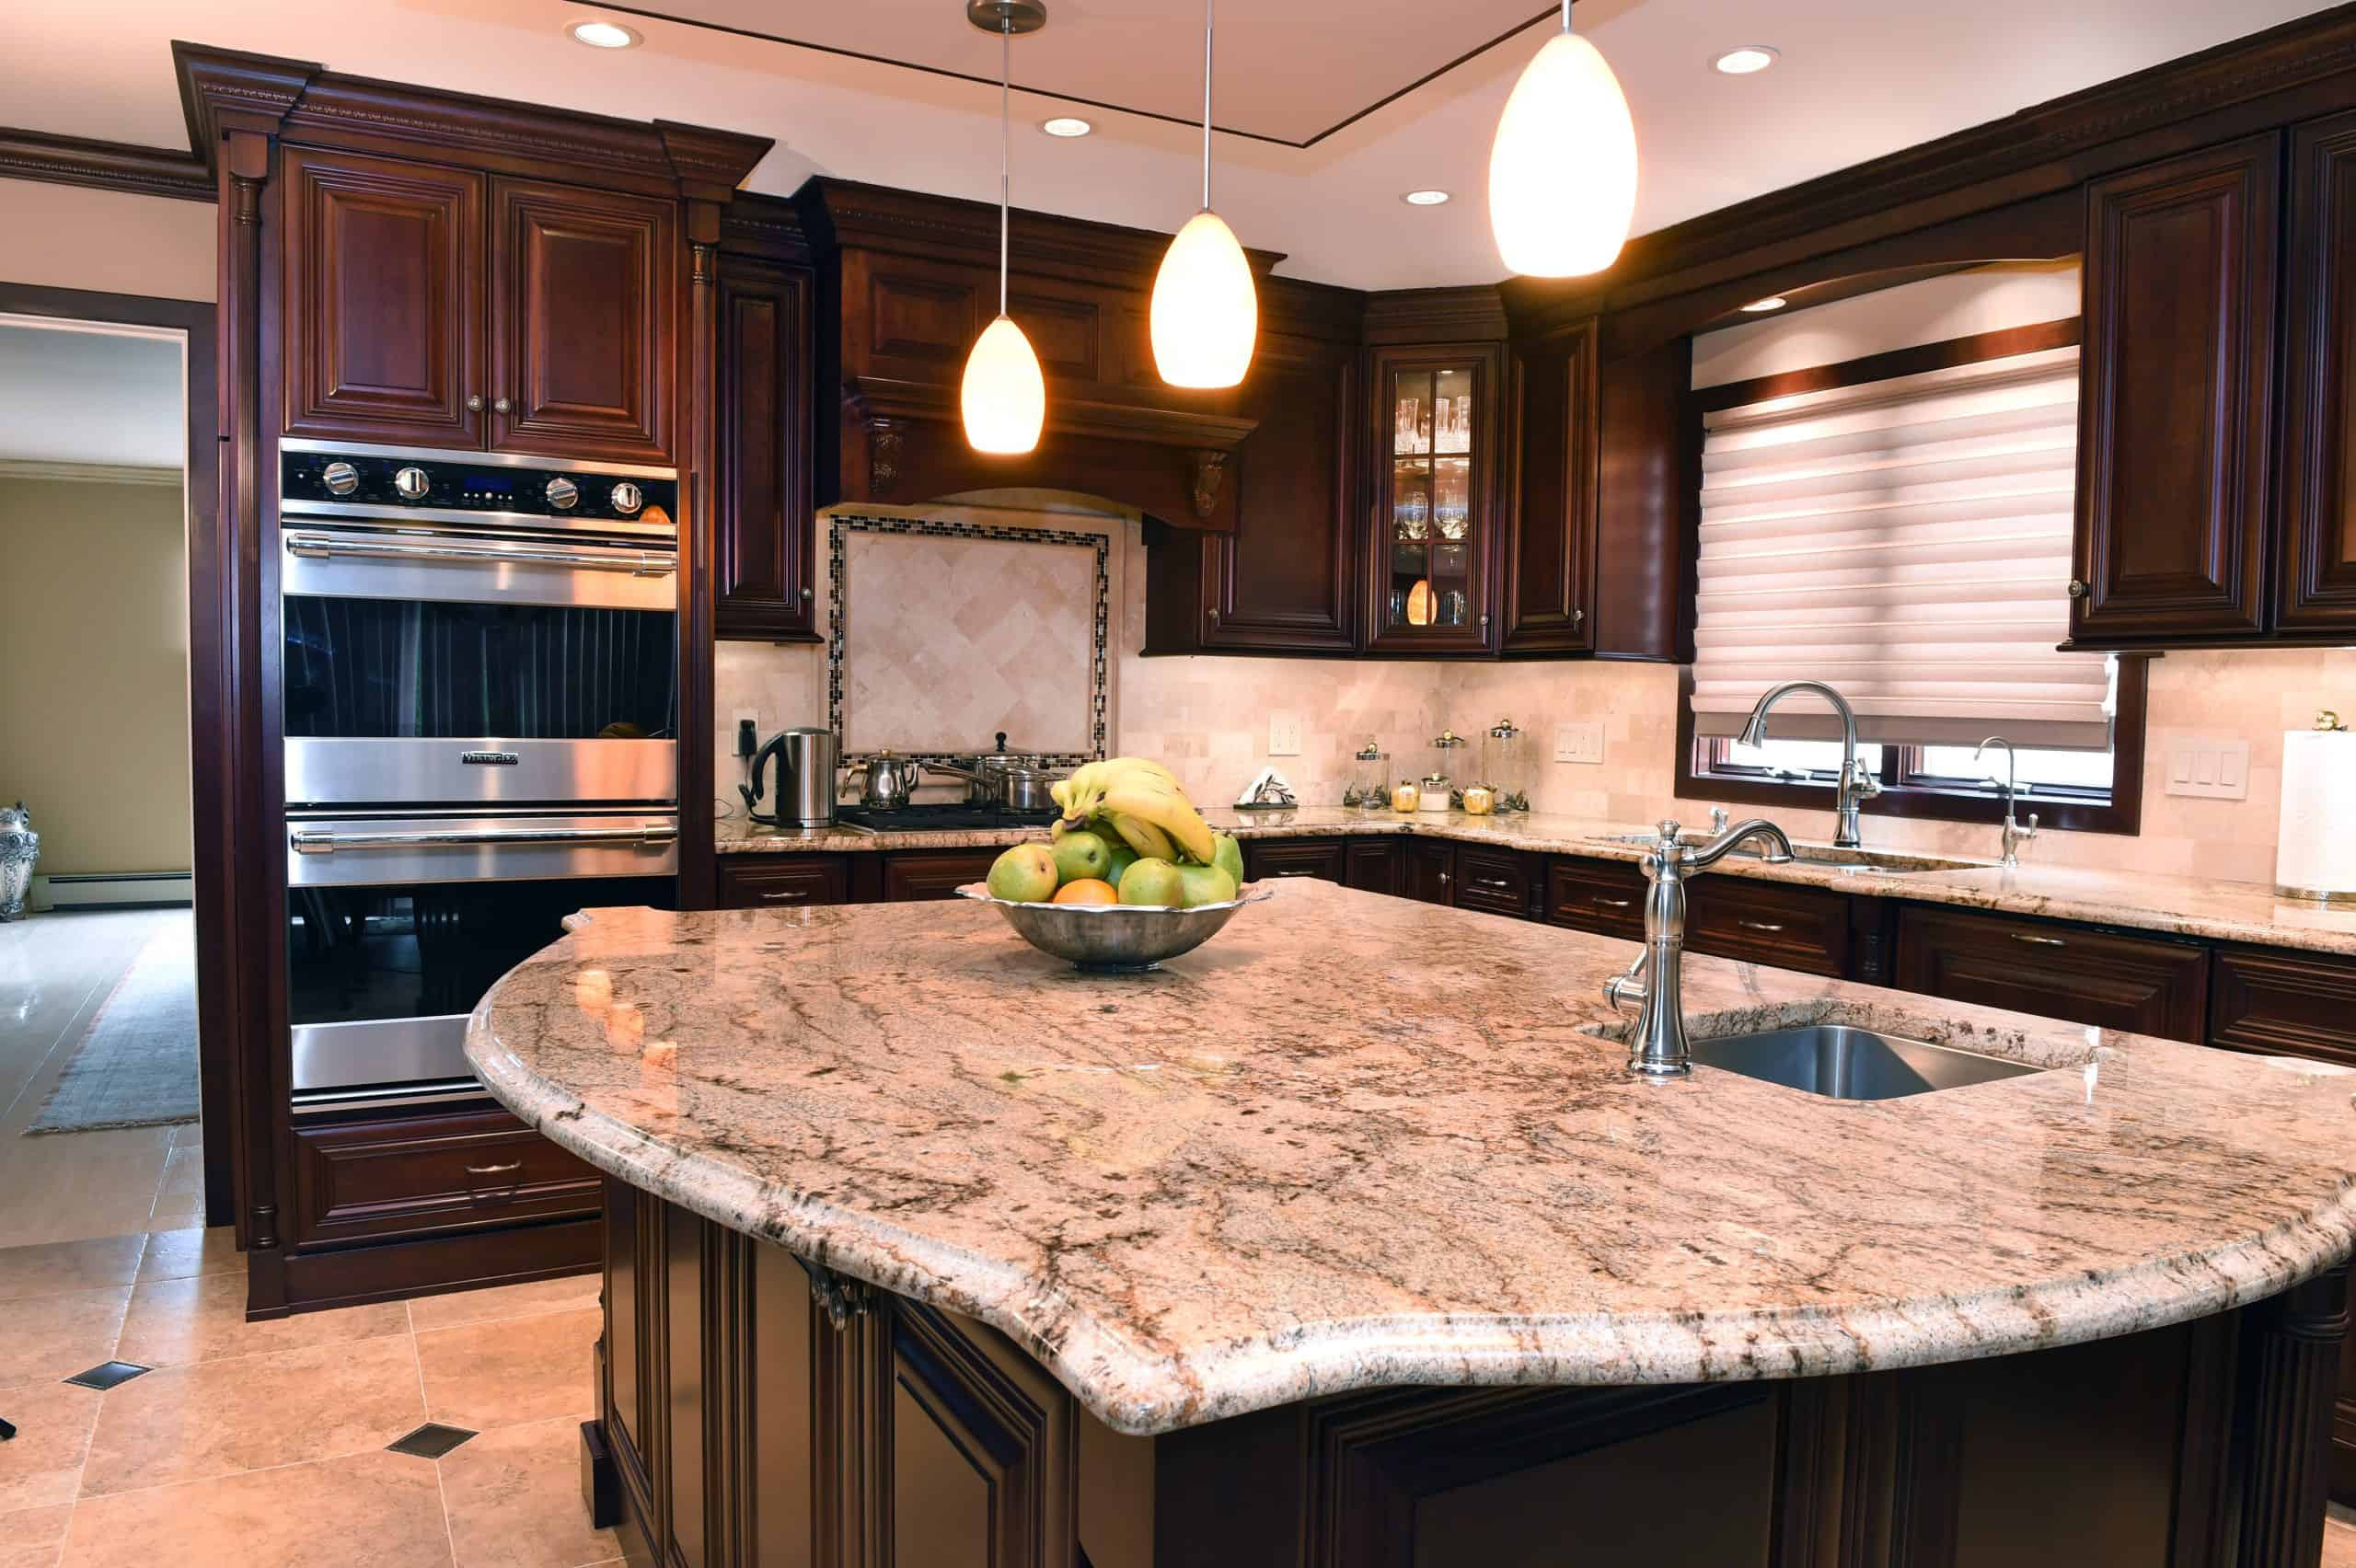 TYpes of edges of granite countertops